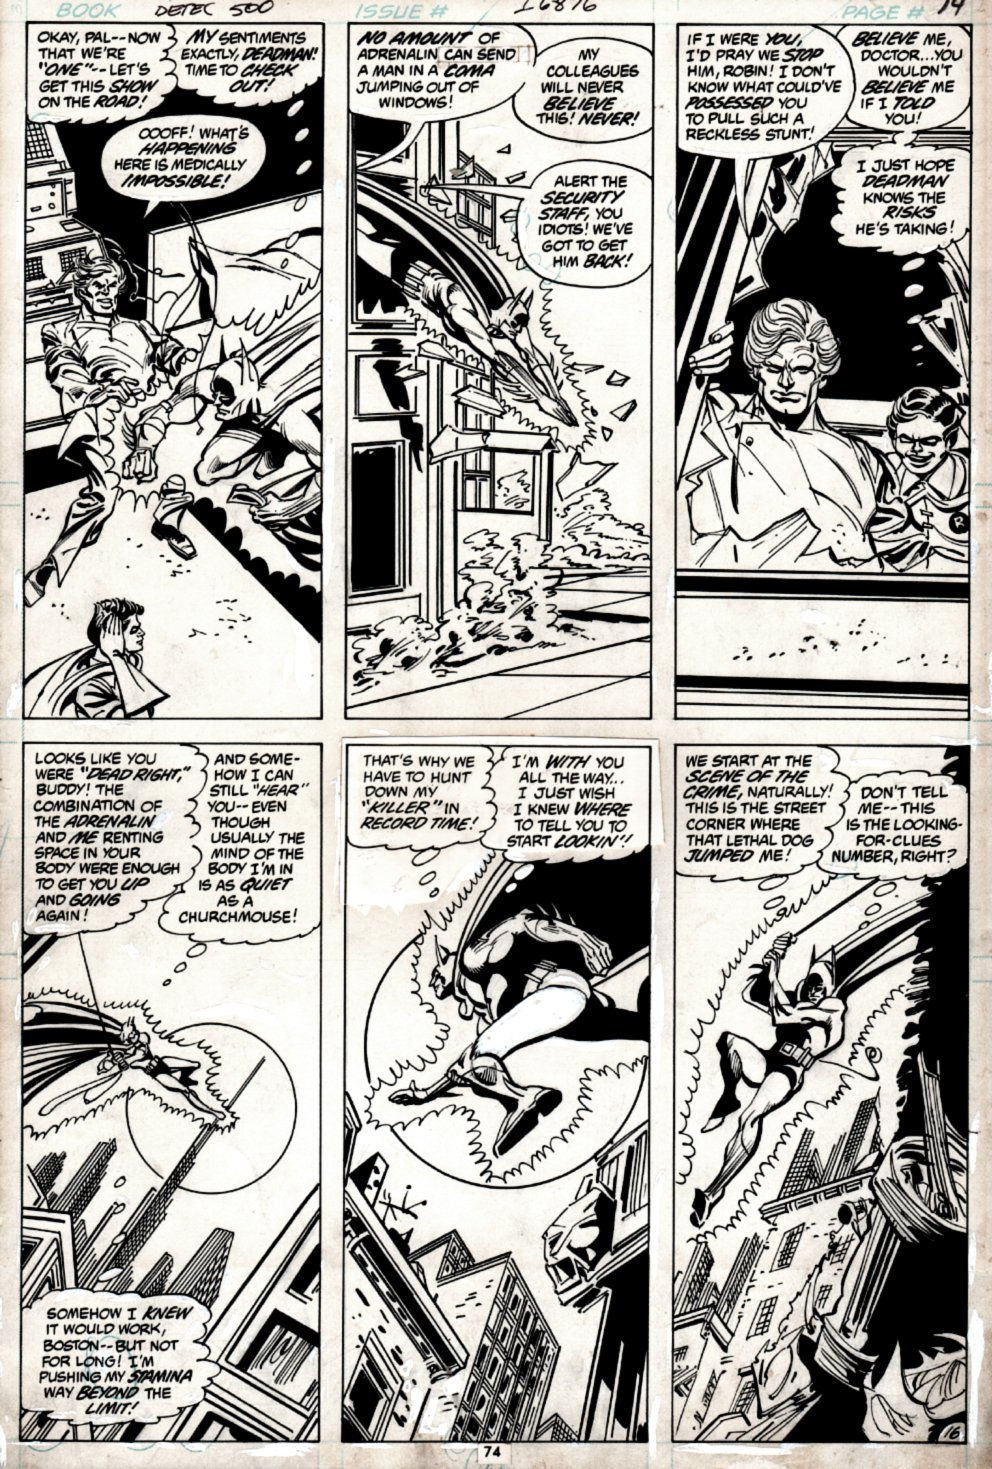 Detective Comics #500 p 16 (DEADMAN IN BATMAN'S BODY IN 5 OF 6 PANELS!) 1980